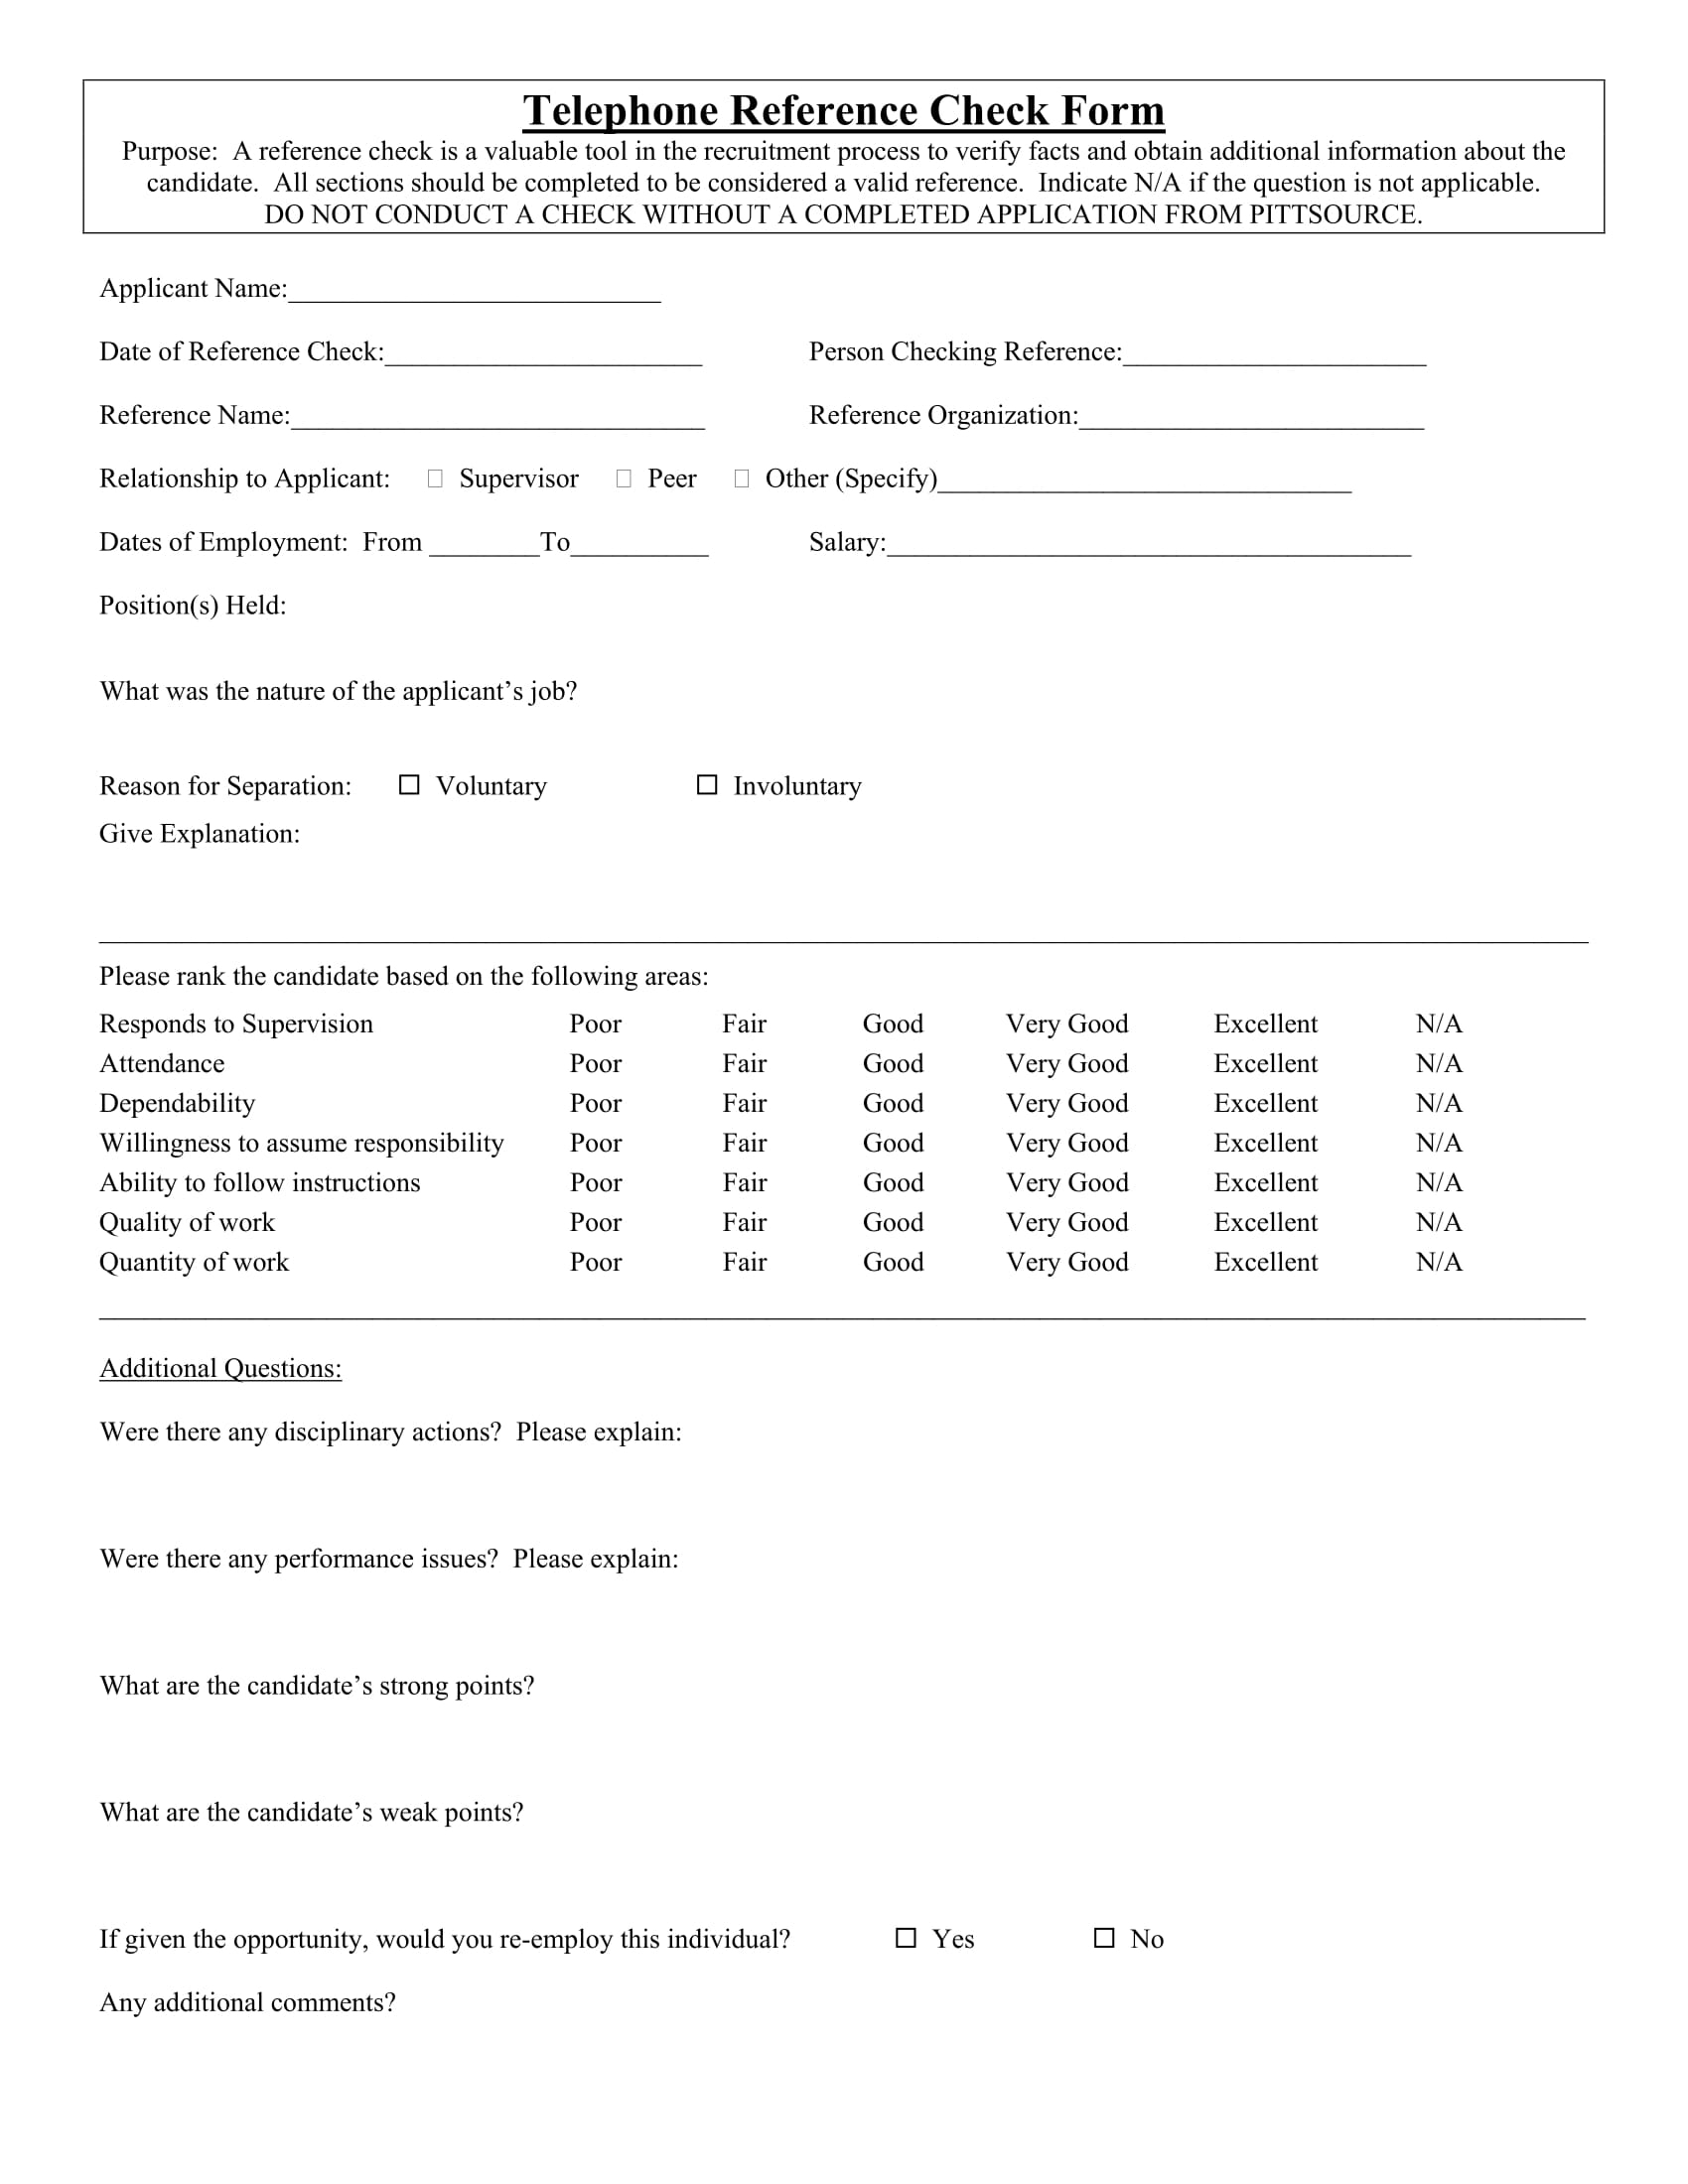 telephone reference check form 1